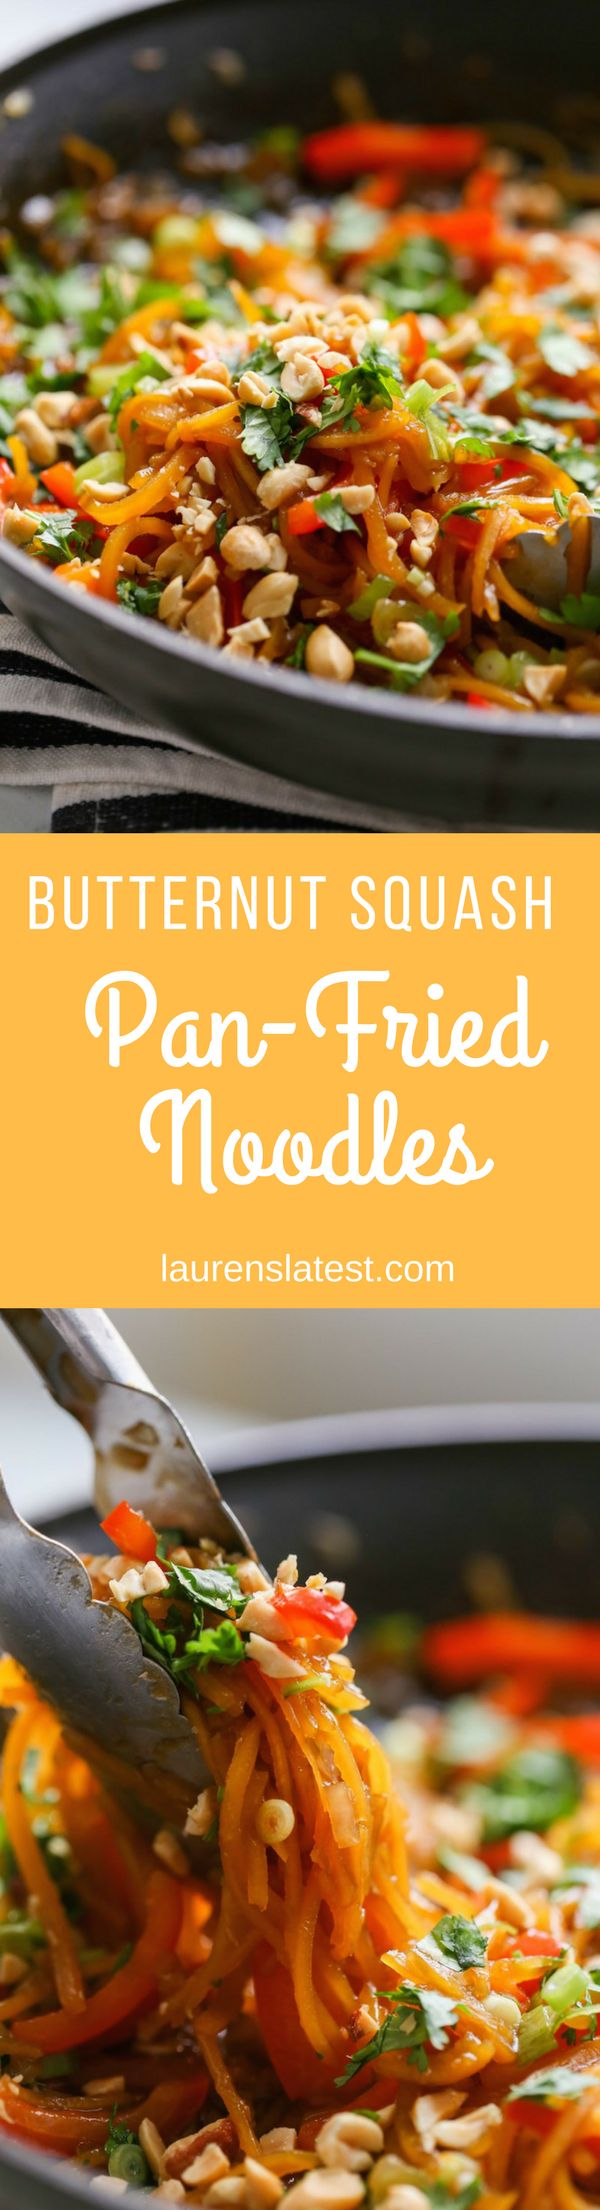 Sesame Butternut Squash Pan-Fried Noodles...A super-simple, extremely healthy (and tasty!) meal made with butternut squash noodles, onion, garlic, ginger and sesame oil. Ready to eat in 10 minutes!!